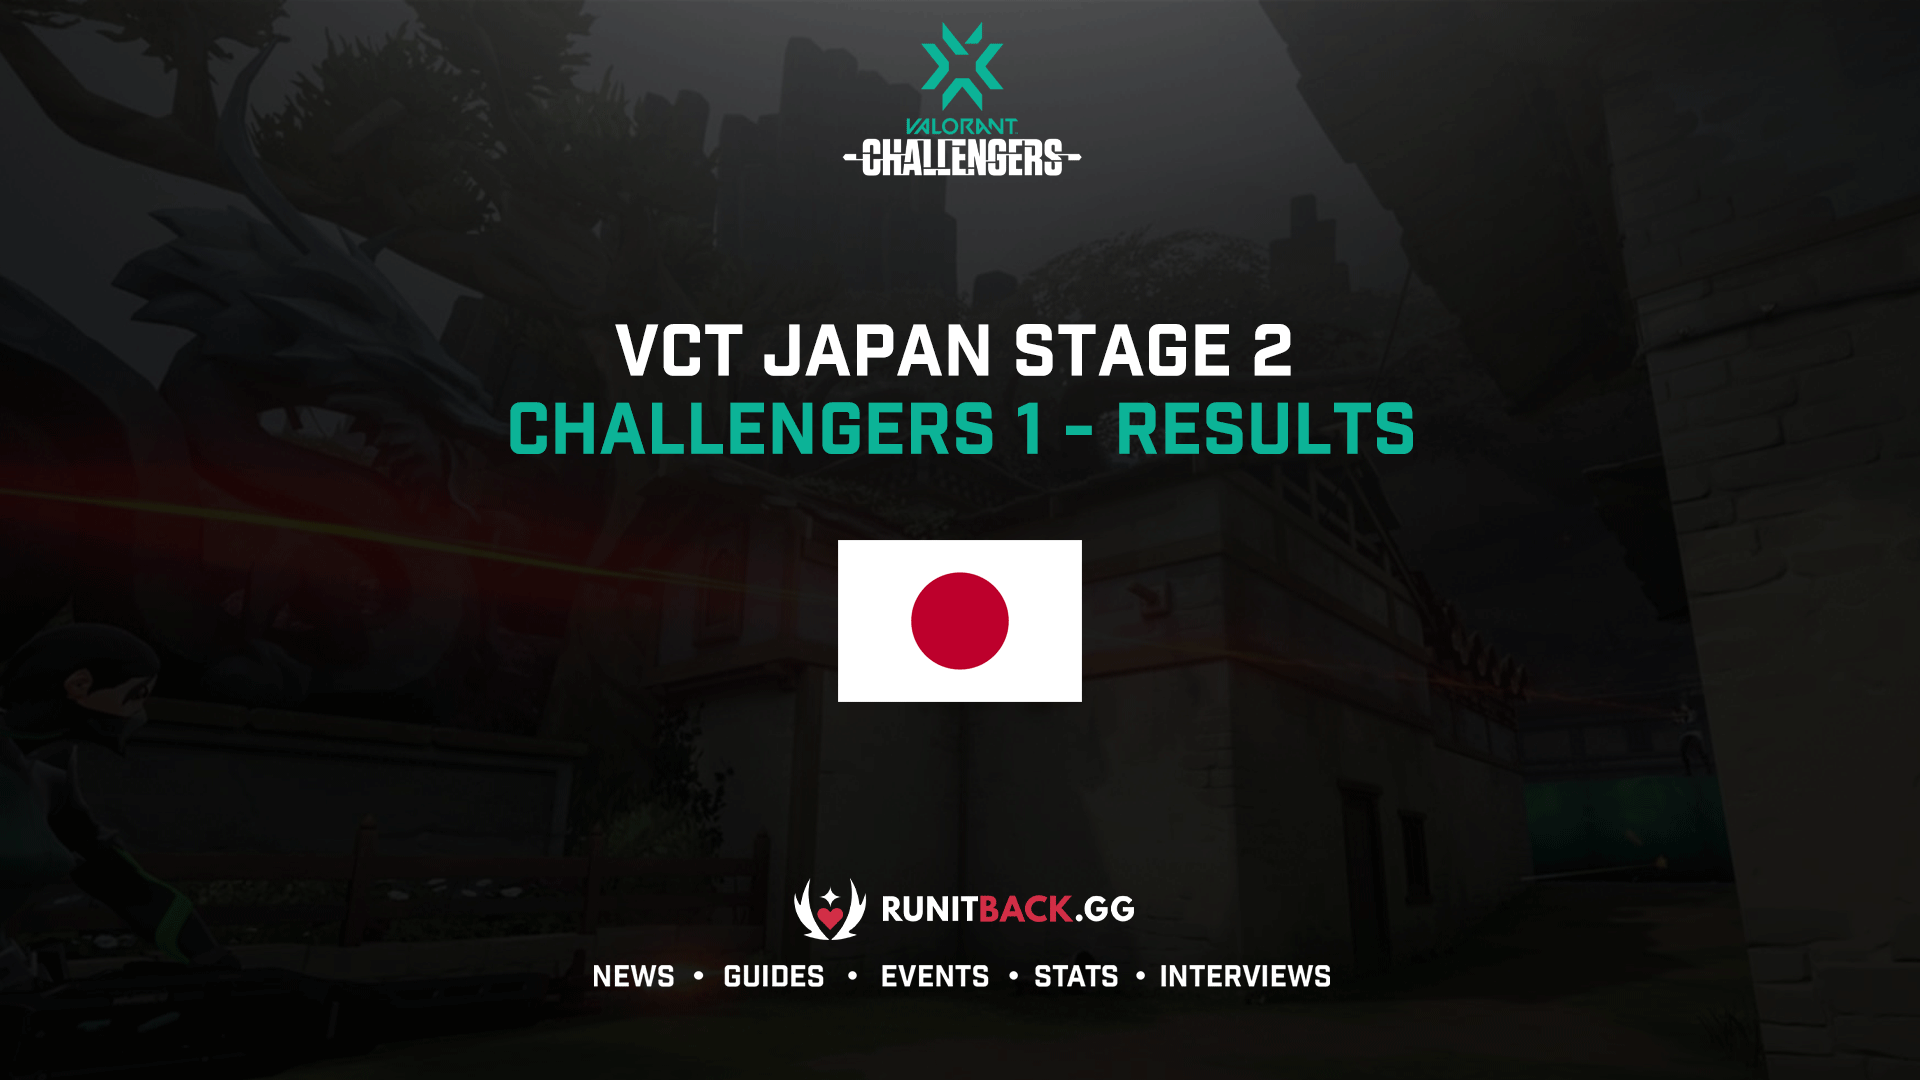 VCT Japan Stage 2 Challengers 1 Results